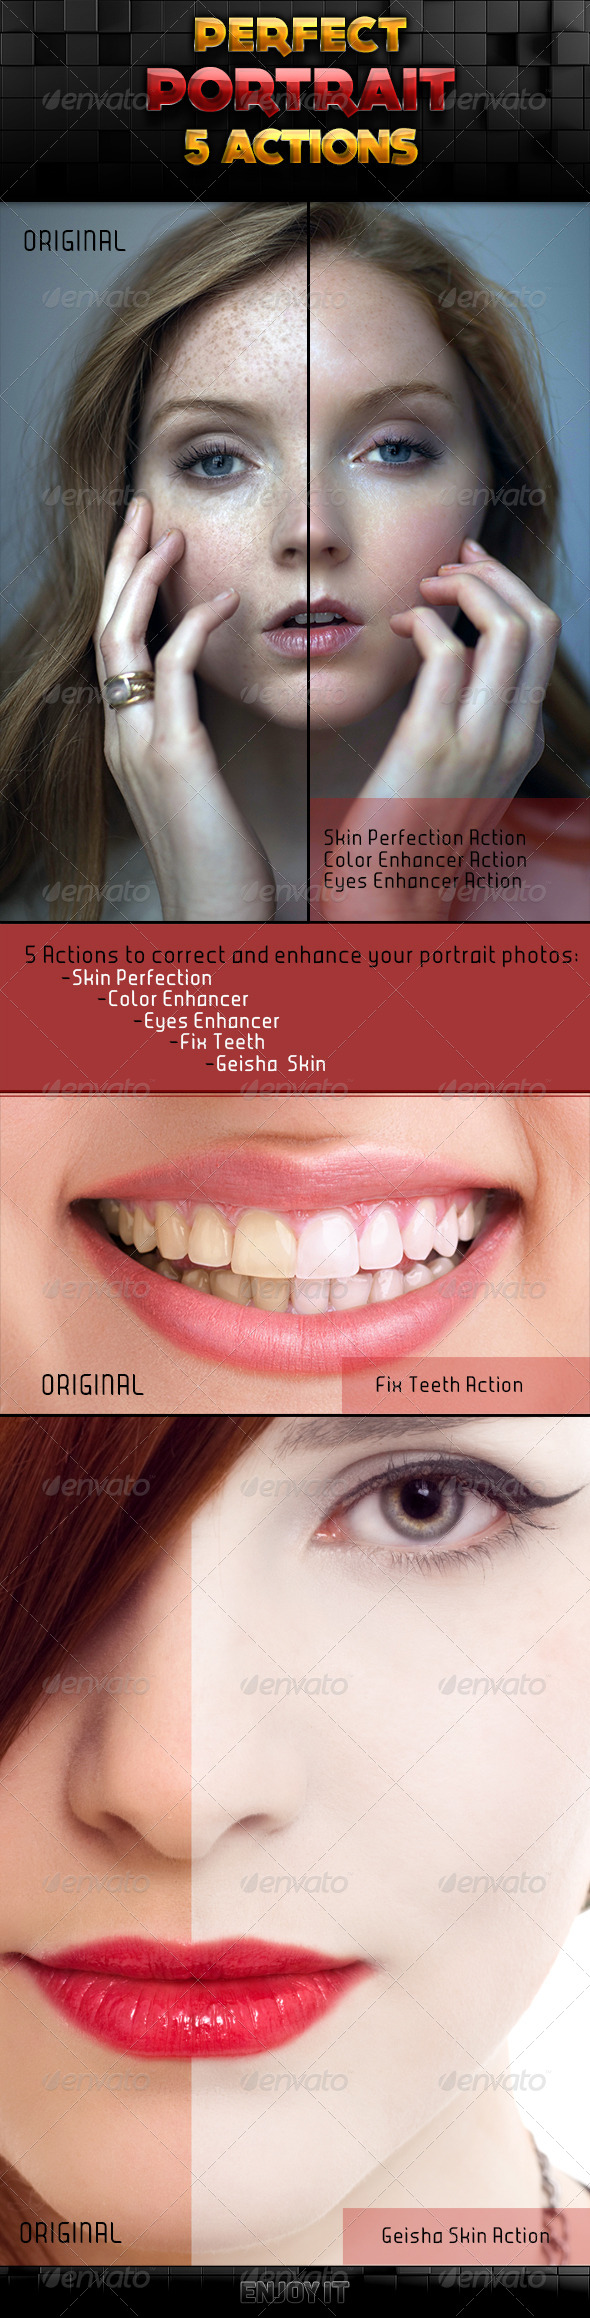 Perfect Portrait Actions Set - Photo Effects Actions